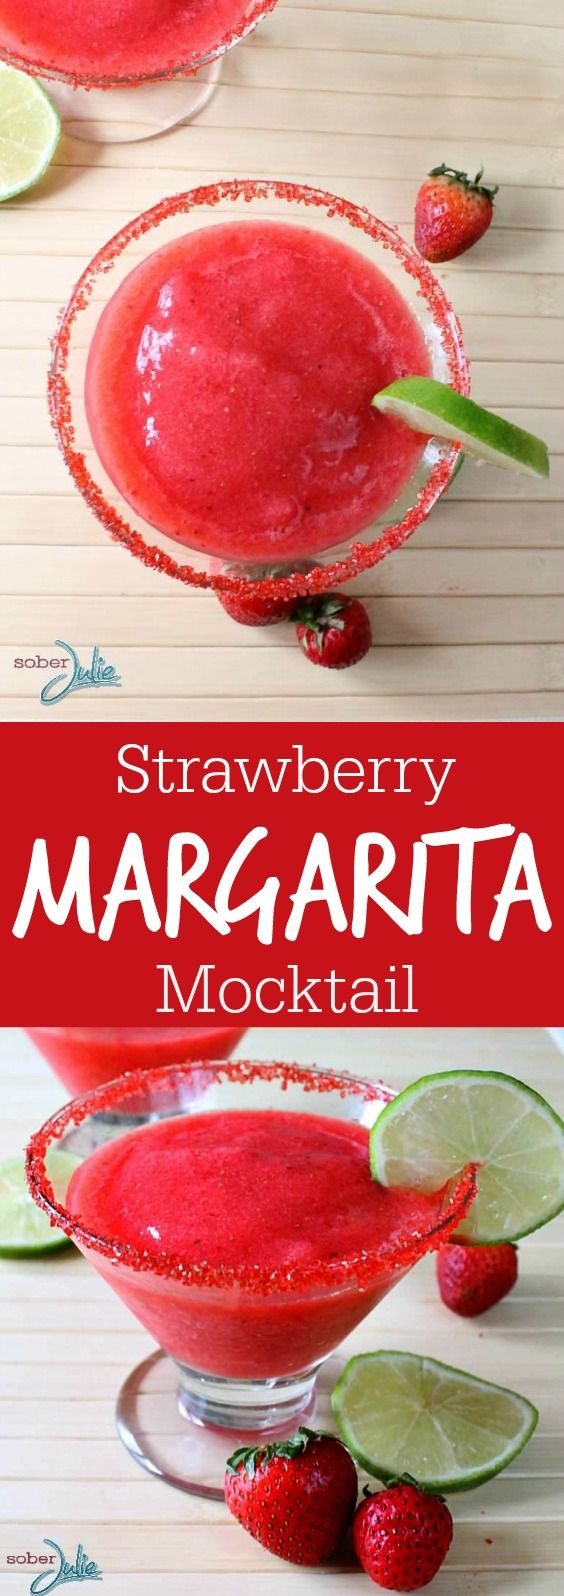 The BEST Easy Non-Alcoholic Drinks Recipes – Creative Mocktails ...